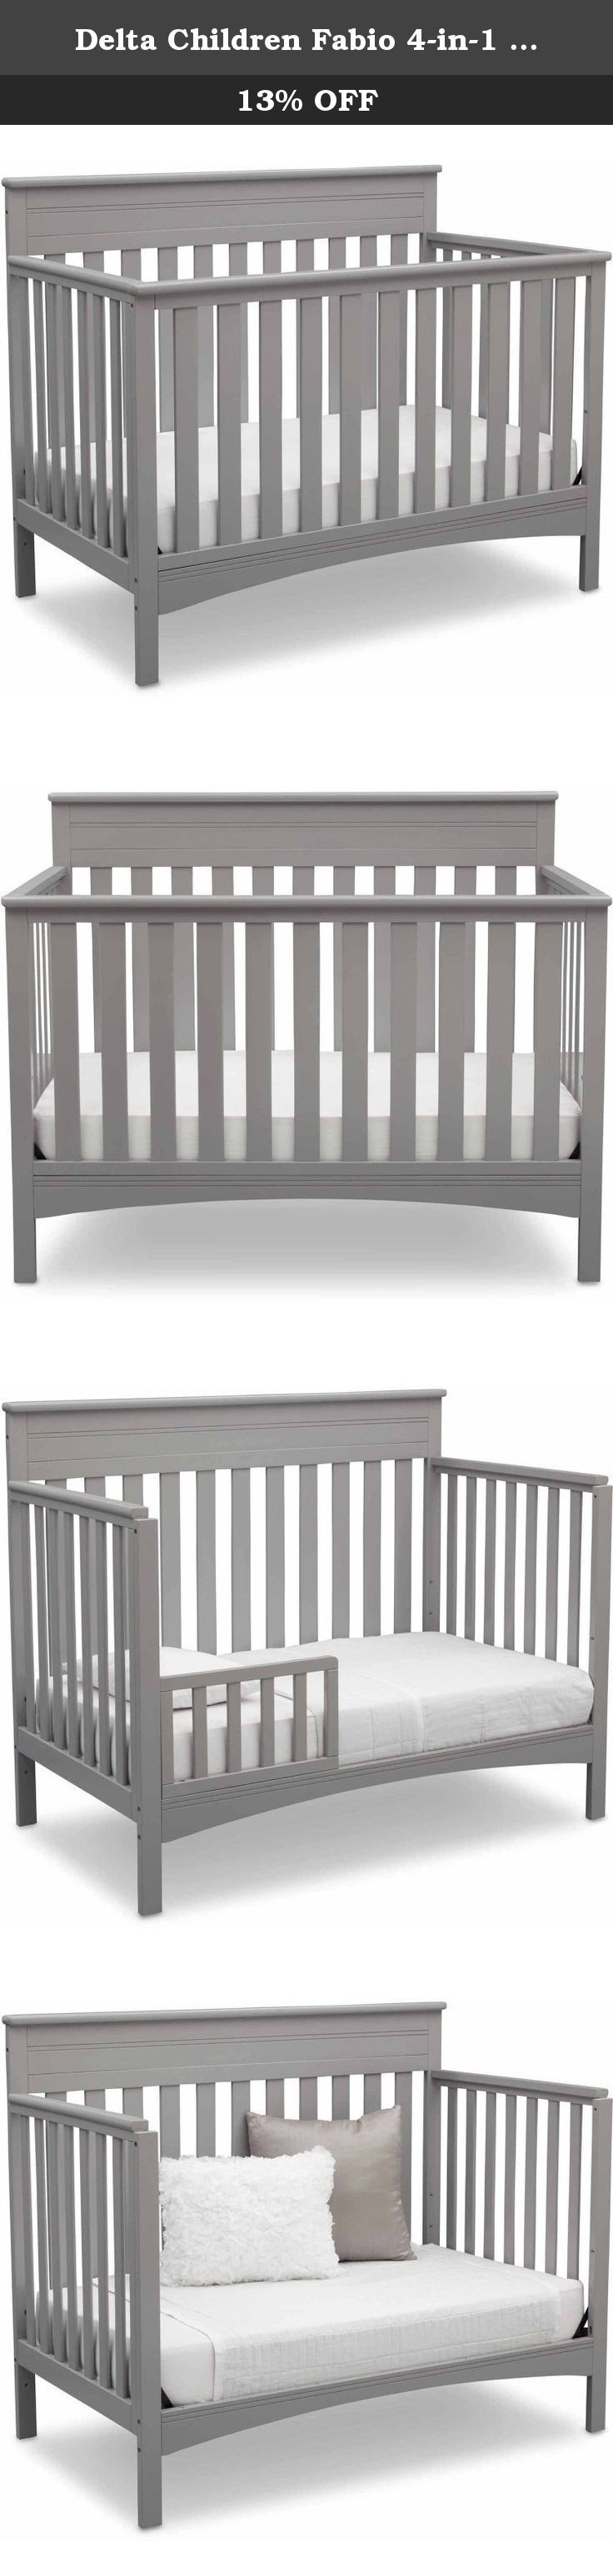 Delta Children Fabio 4-in-1 Crib. The Fabio 4-in-1 Crib from Delta Children blends classic styling with contemporary convenience for a convertible crib that meets your baby's changing needs. Boasting a handsomely crafted headboard with molded detailing and clean lines, this strong and sturdy crib with three mattress adjustment levels also turns into a toddler bed, daybed and full size bed, growing alongside your child (Toddler Guardrail and Full Size Bed Rails sold separately). -Converts...